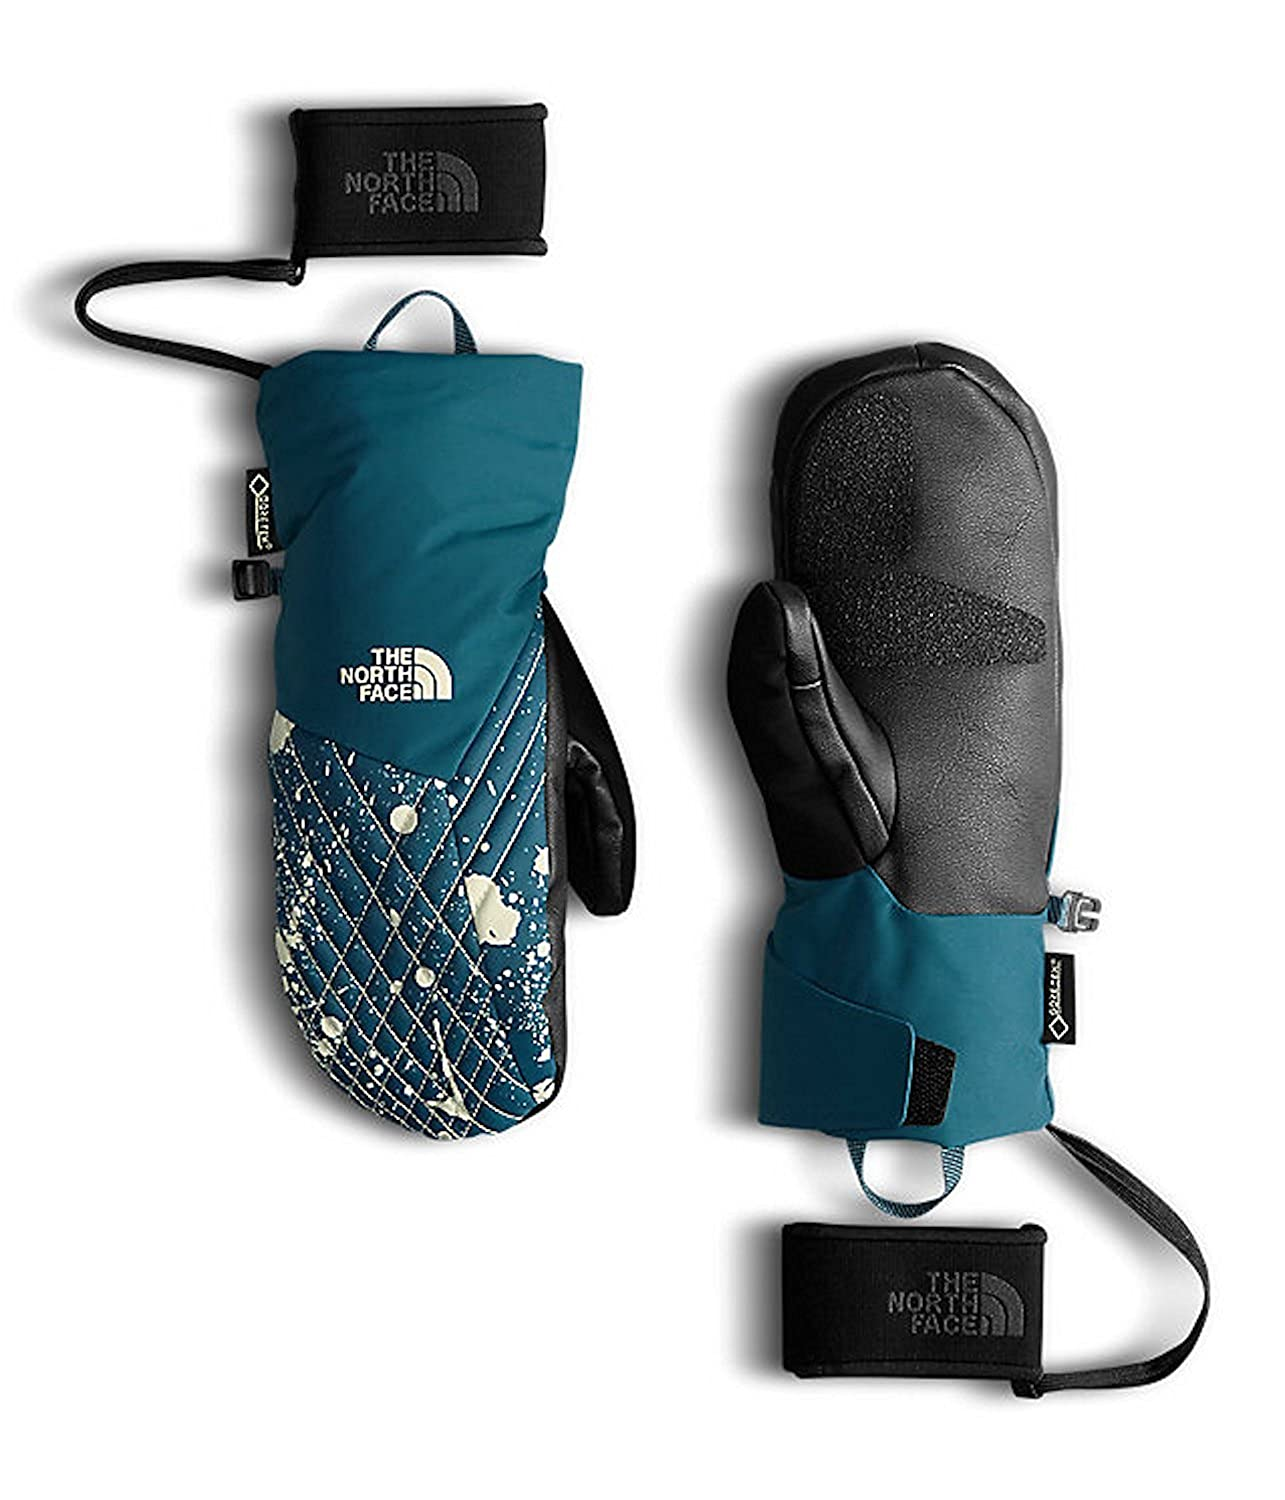 The North Face ACCESSORY レディース B01NCR4WDU   Large